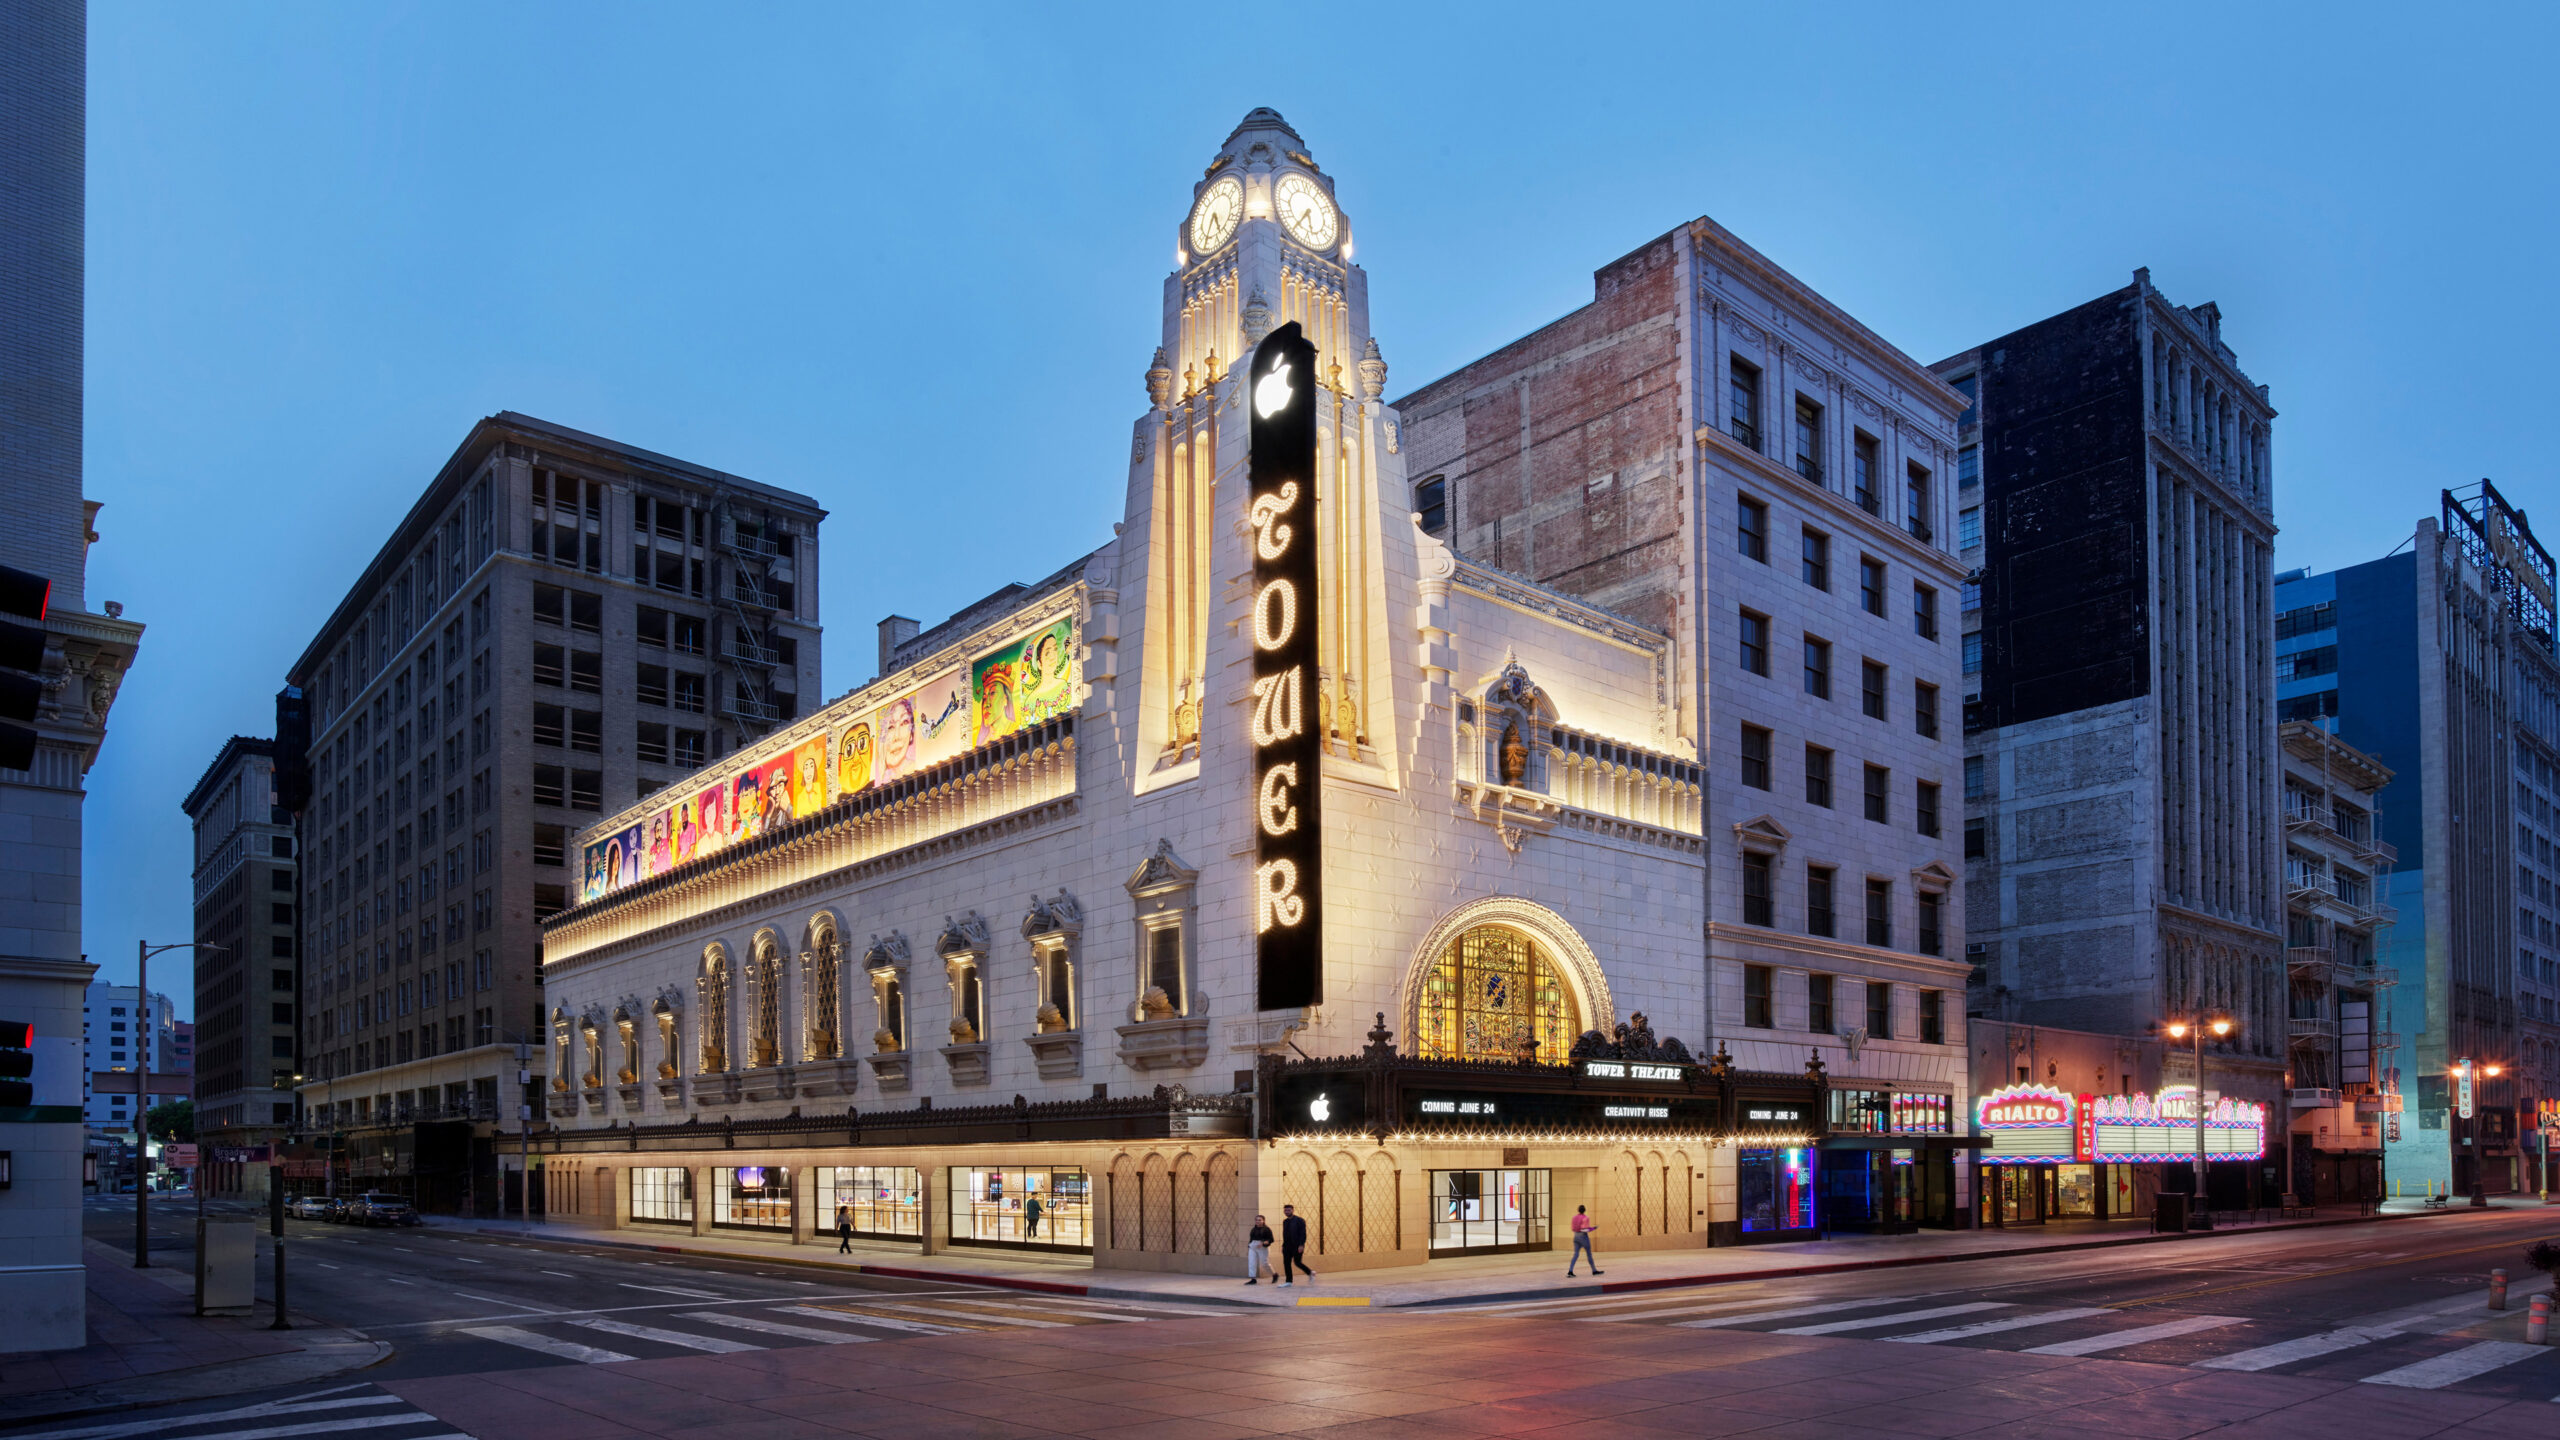 Apple is opening a store in downtown LA's nearly 100-year-old Tower Theatre – TechCrunch